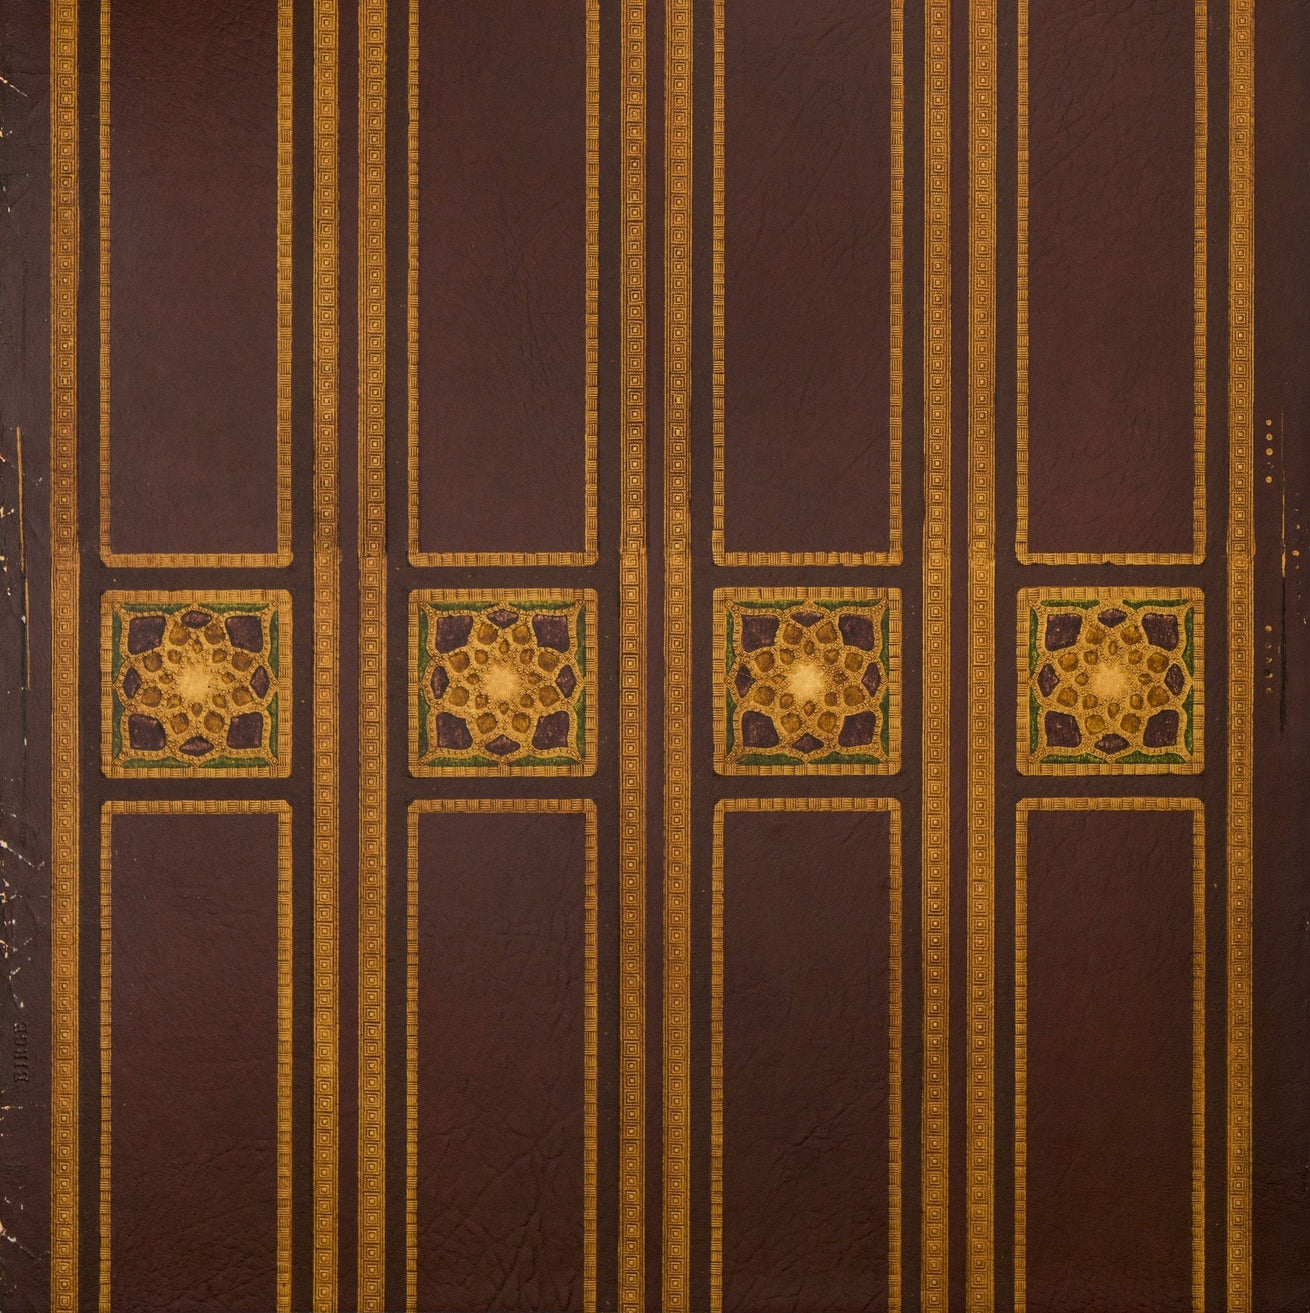 "5"" Leather Medallion Border - Antique Wallpaper Rolls"